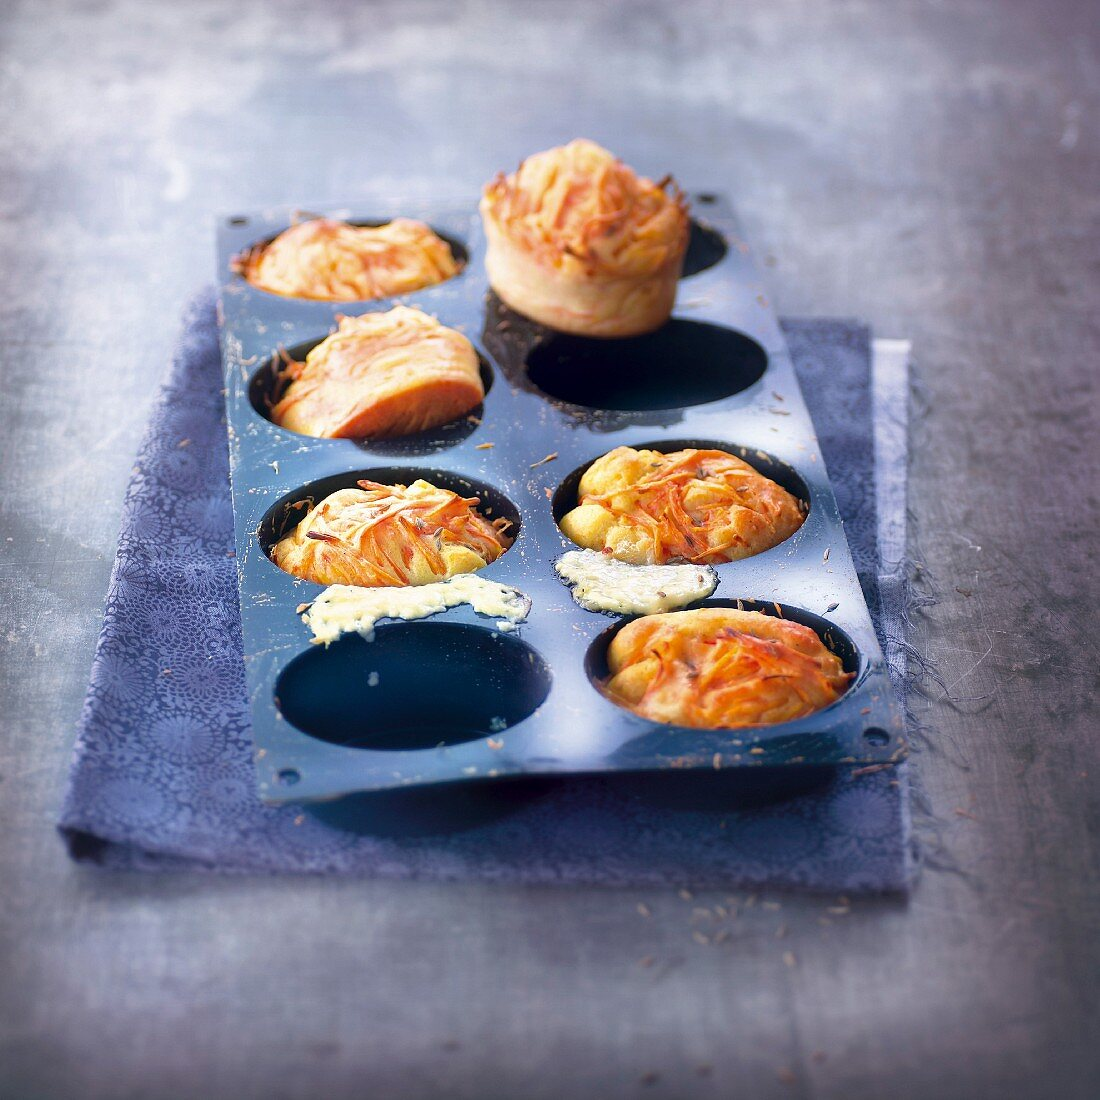 Carrot and cheese savoury fondants